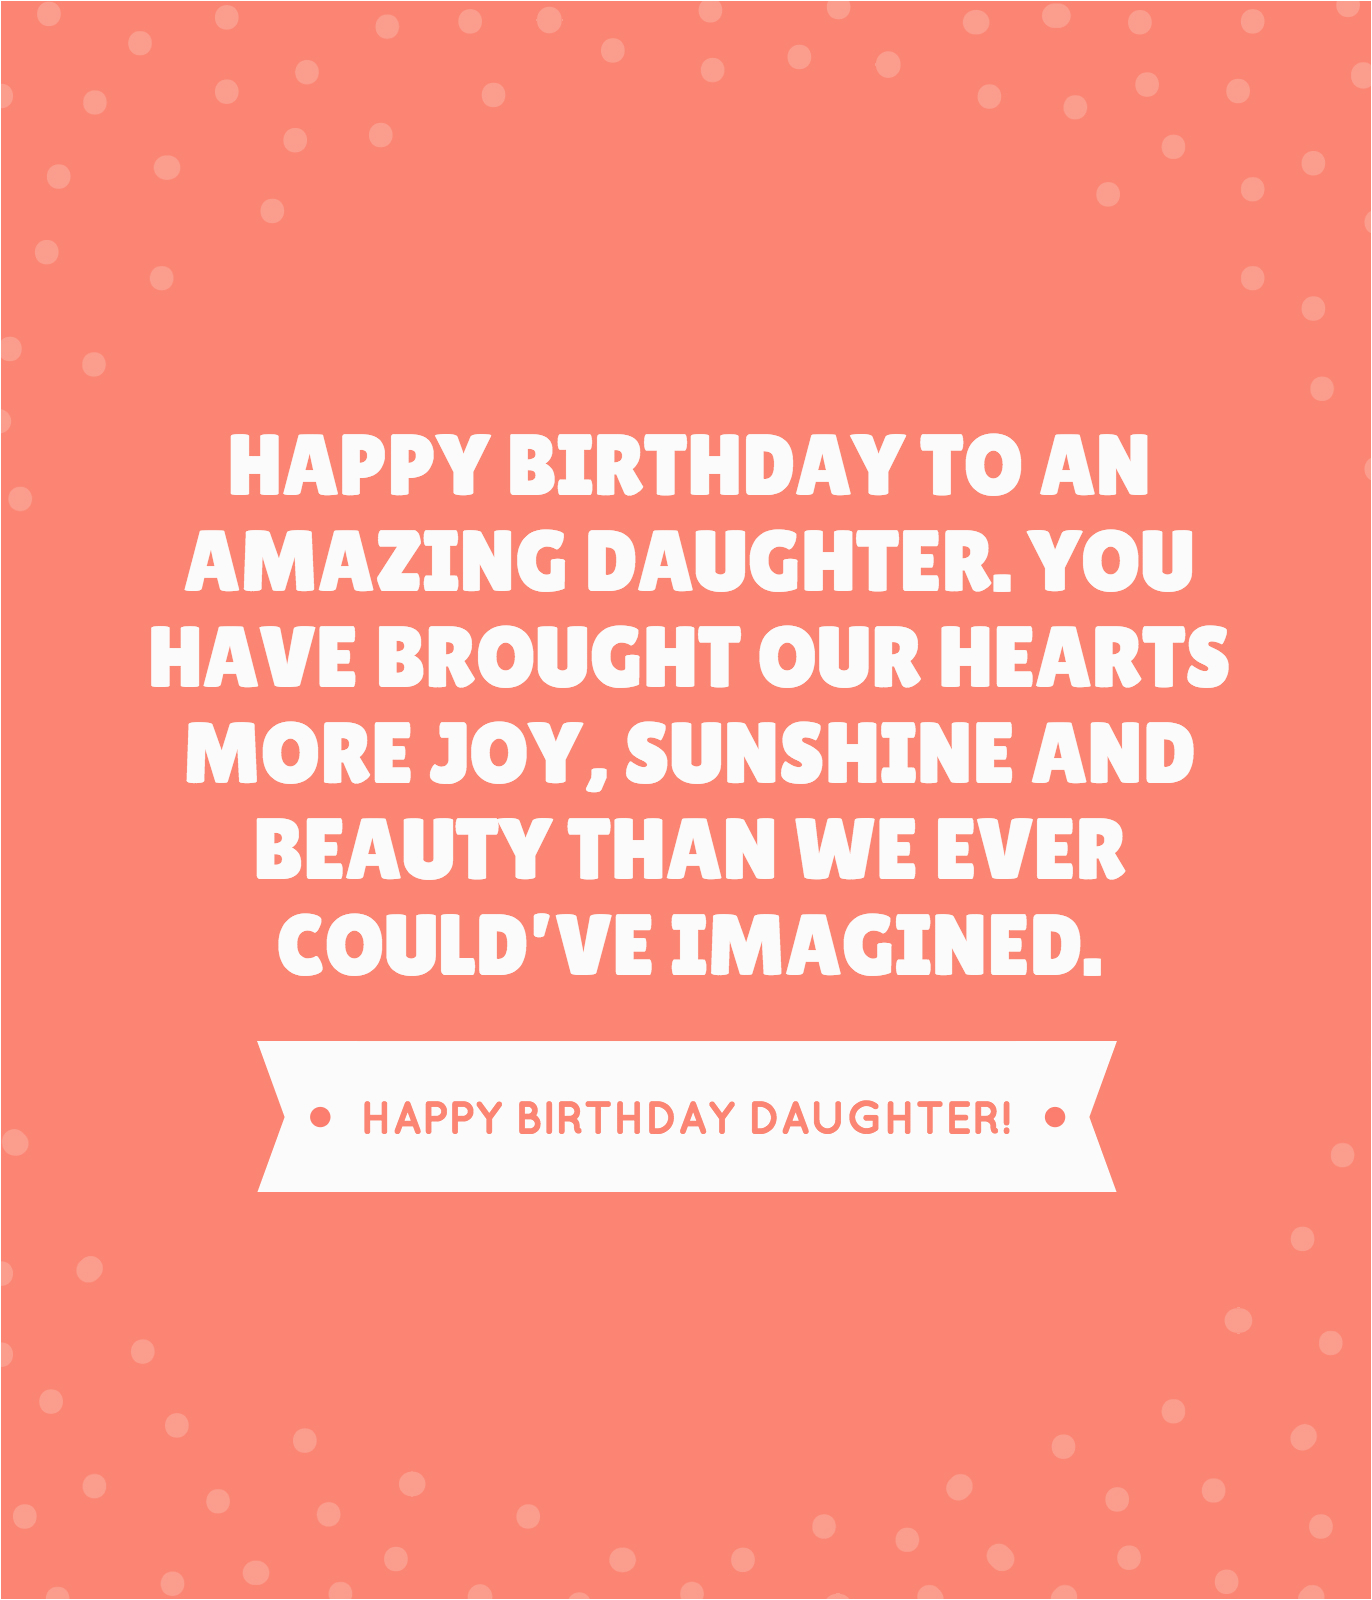 Happy Birthday to Our Daughter Quotes 35 Beautiful Ways to Say Happy Birthday Daughter Unique